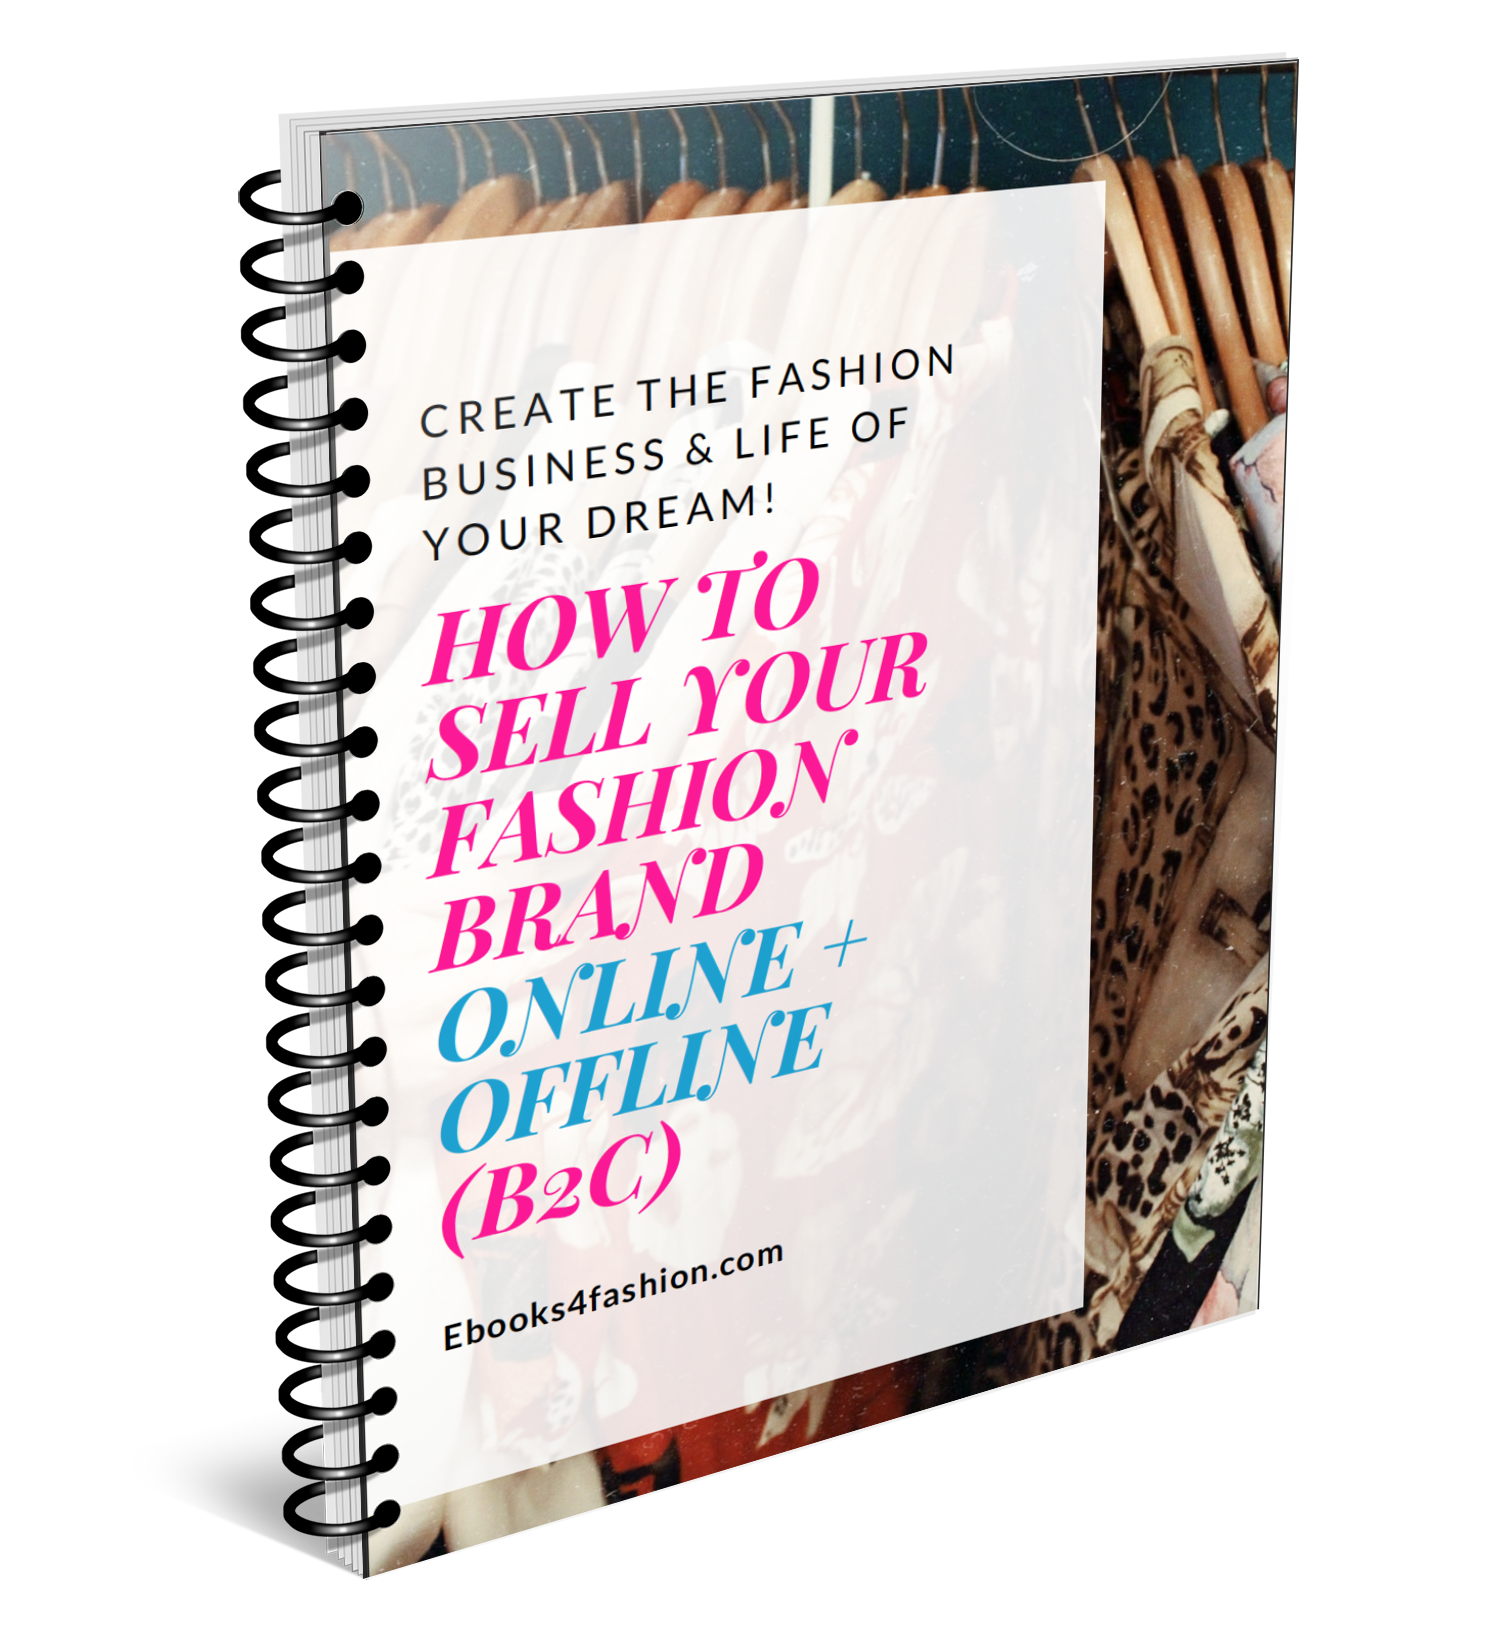 HOW TO SELL YOUR FASHION BRAND ONLINE + OFFLINE